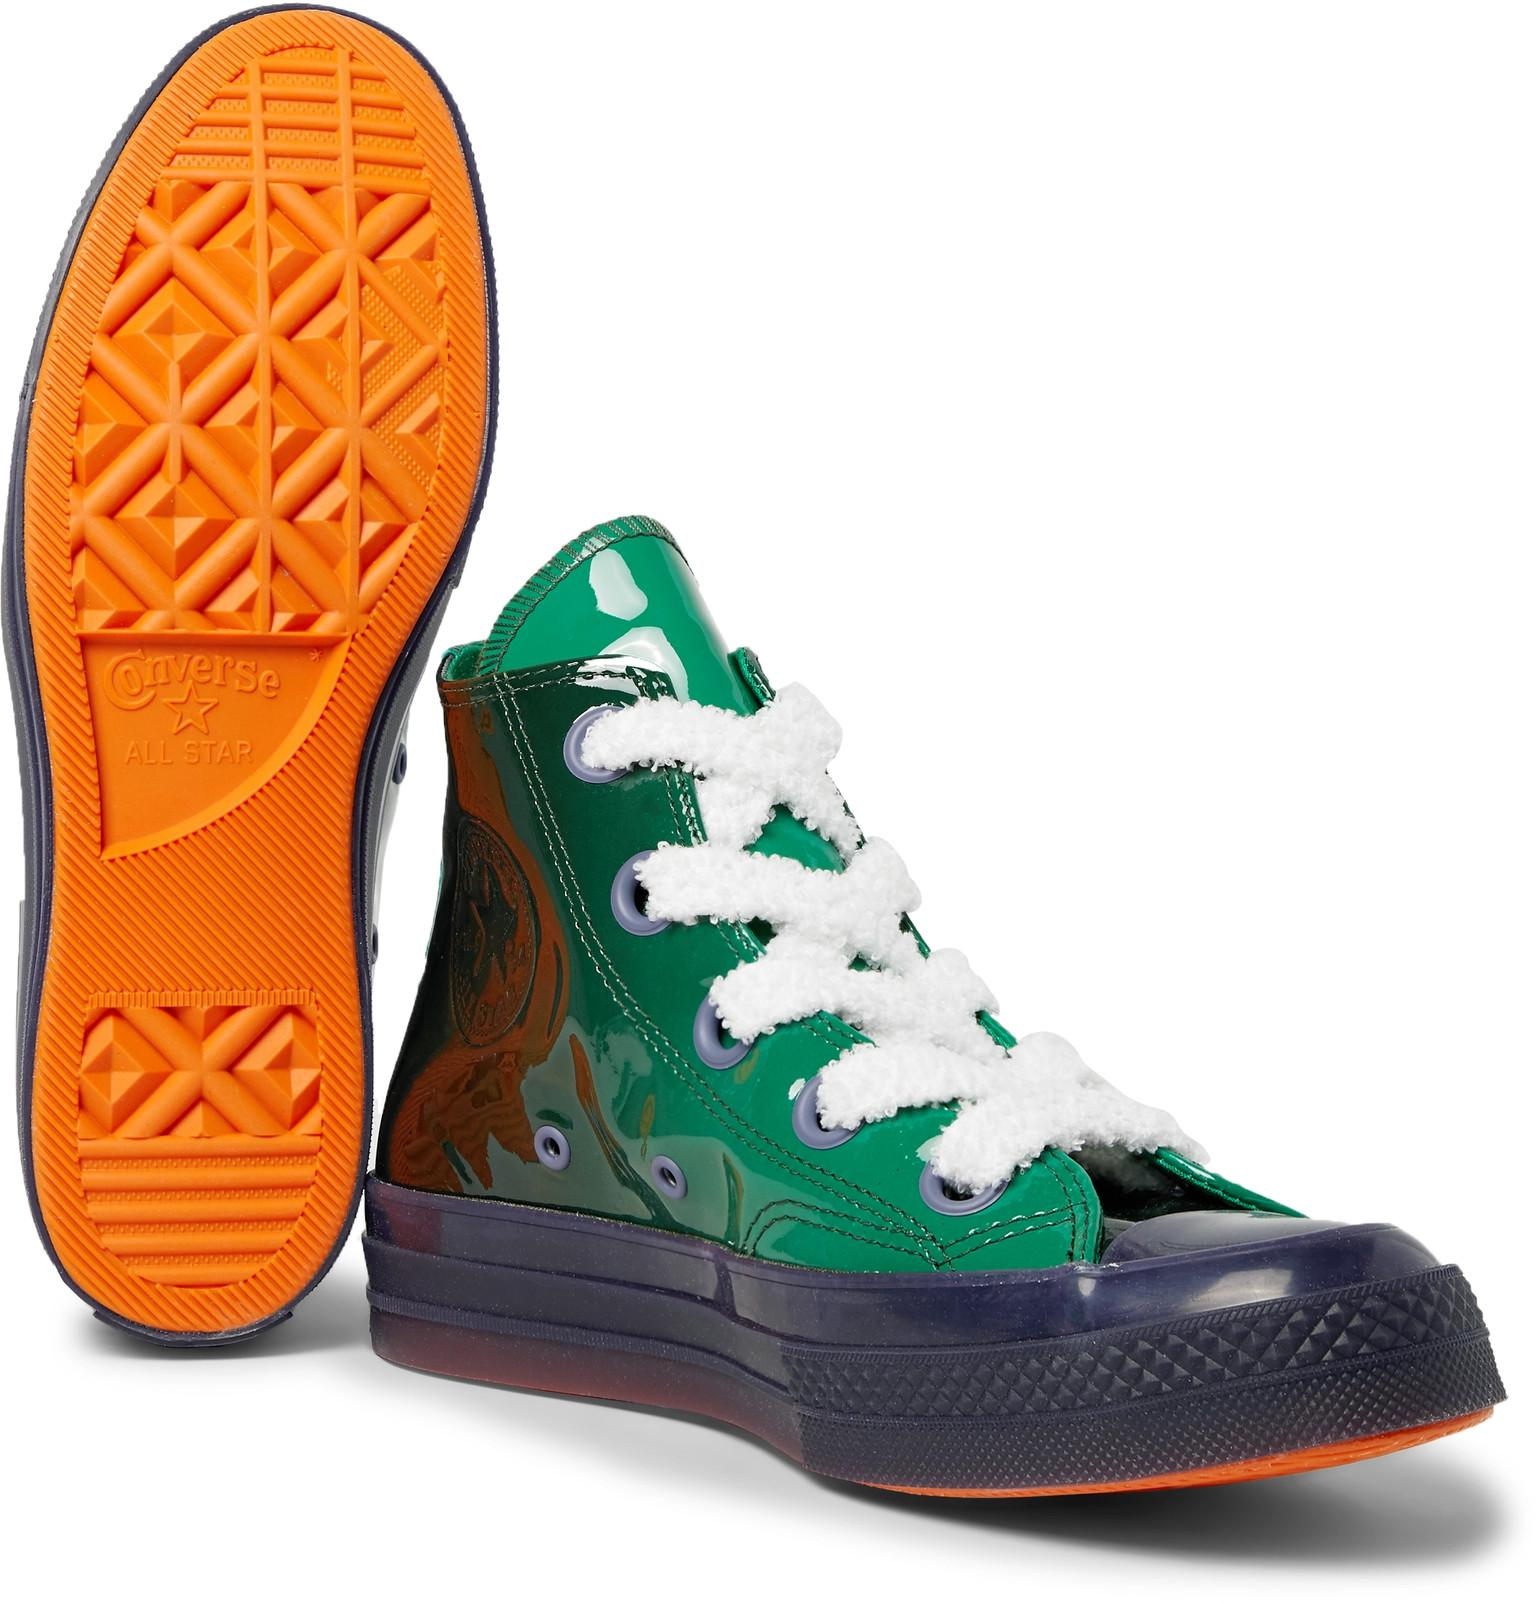 ac2fd62a02d Converse - Green Jw Anderson 1970s Chuck Taylor All Star Dégradé  Patent-leather High-. View fullscreen